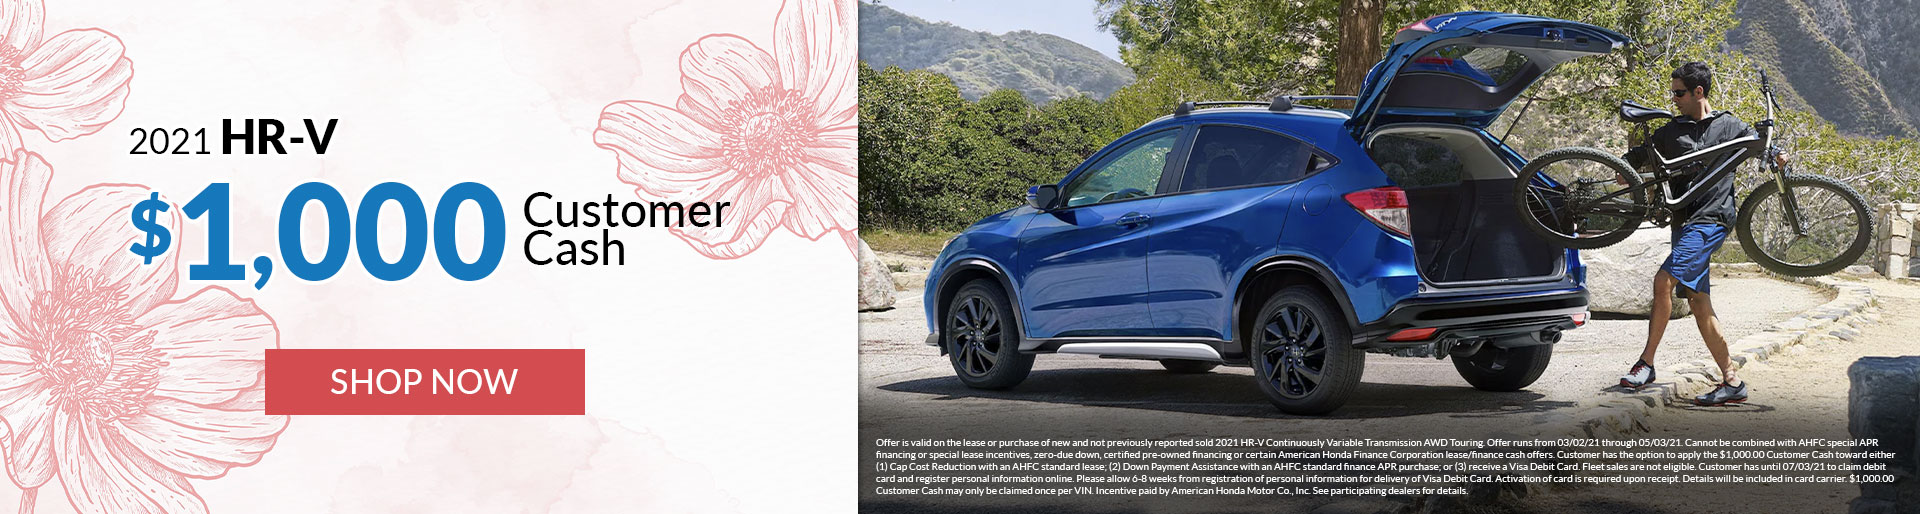 2021 Honda HR-V Offers